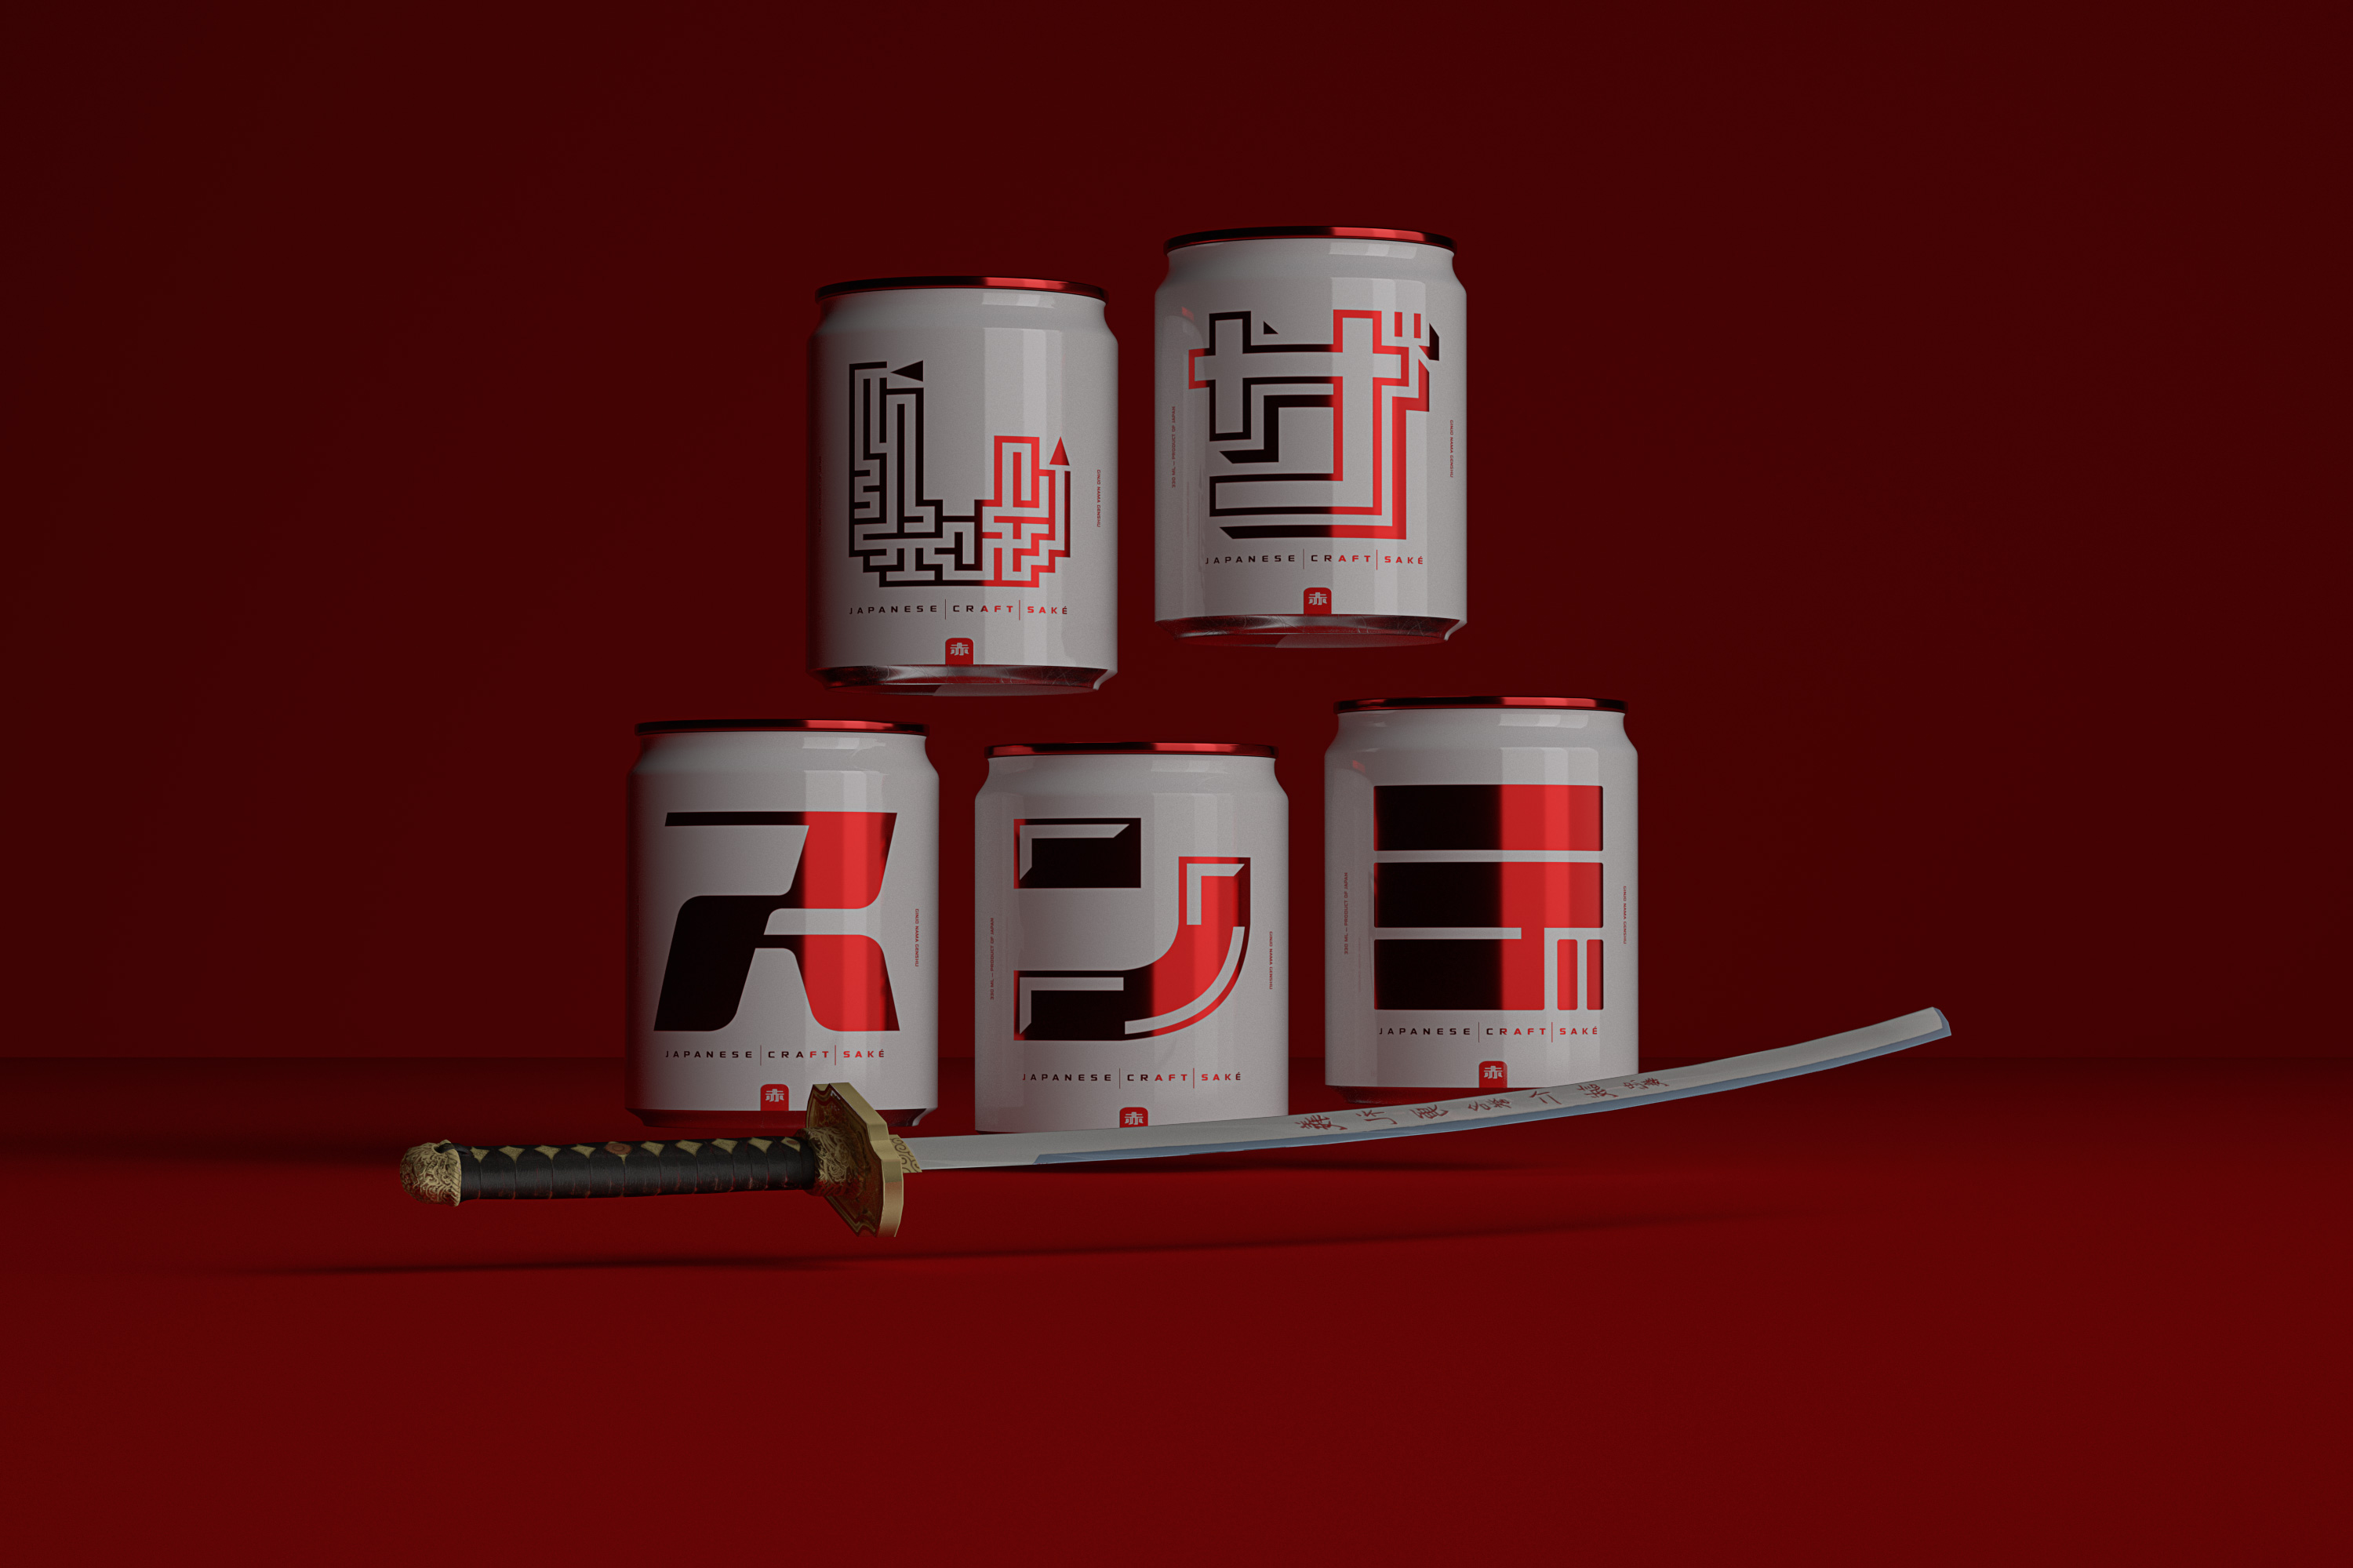 Concept Packaging Design for Red Saké, Japanese Craft Spirits in Square-Shaped Aluminium Cans